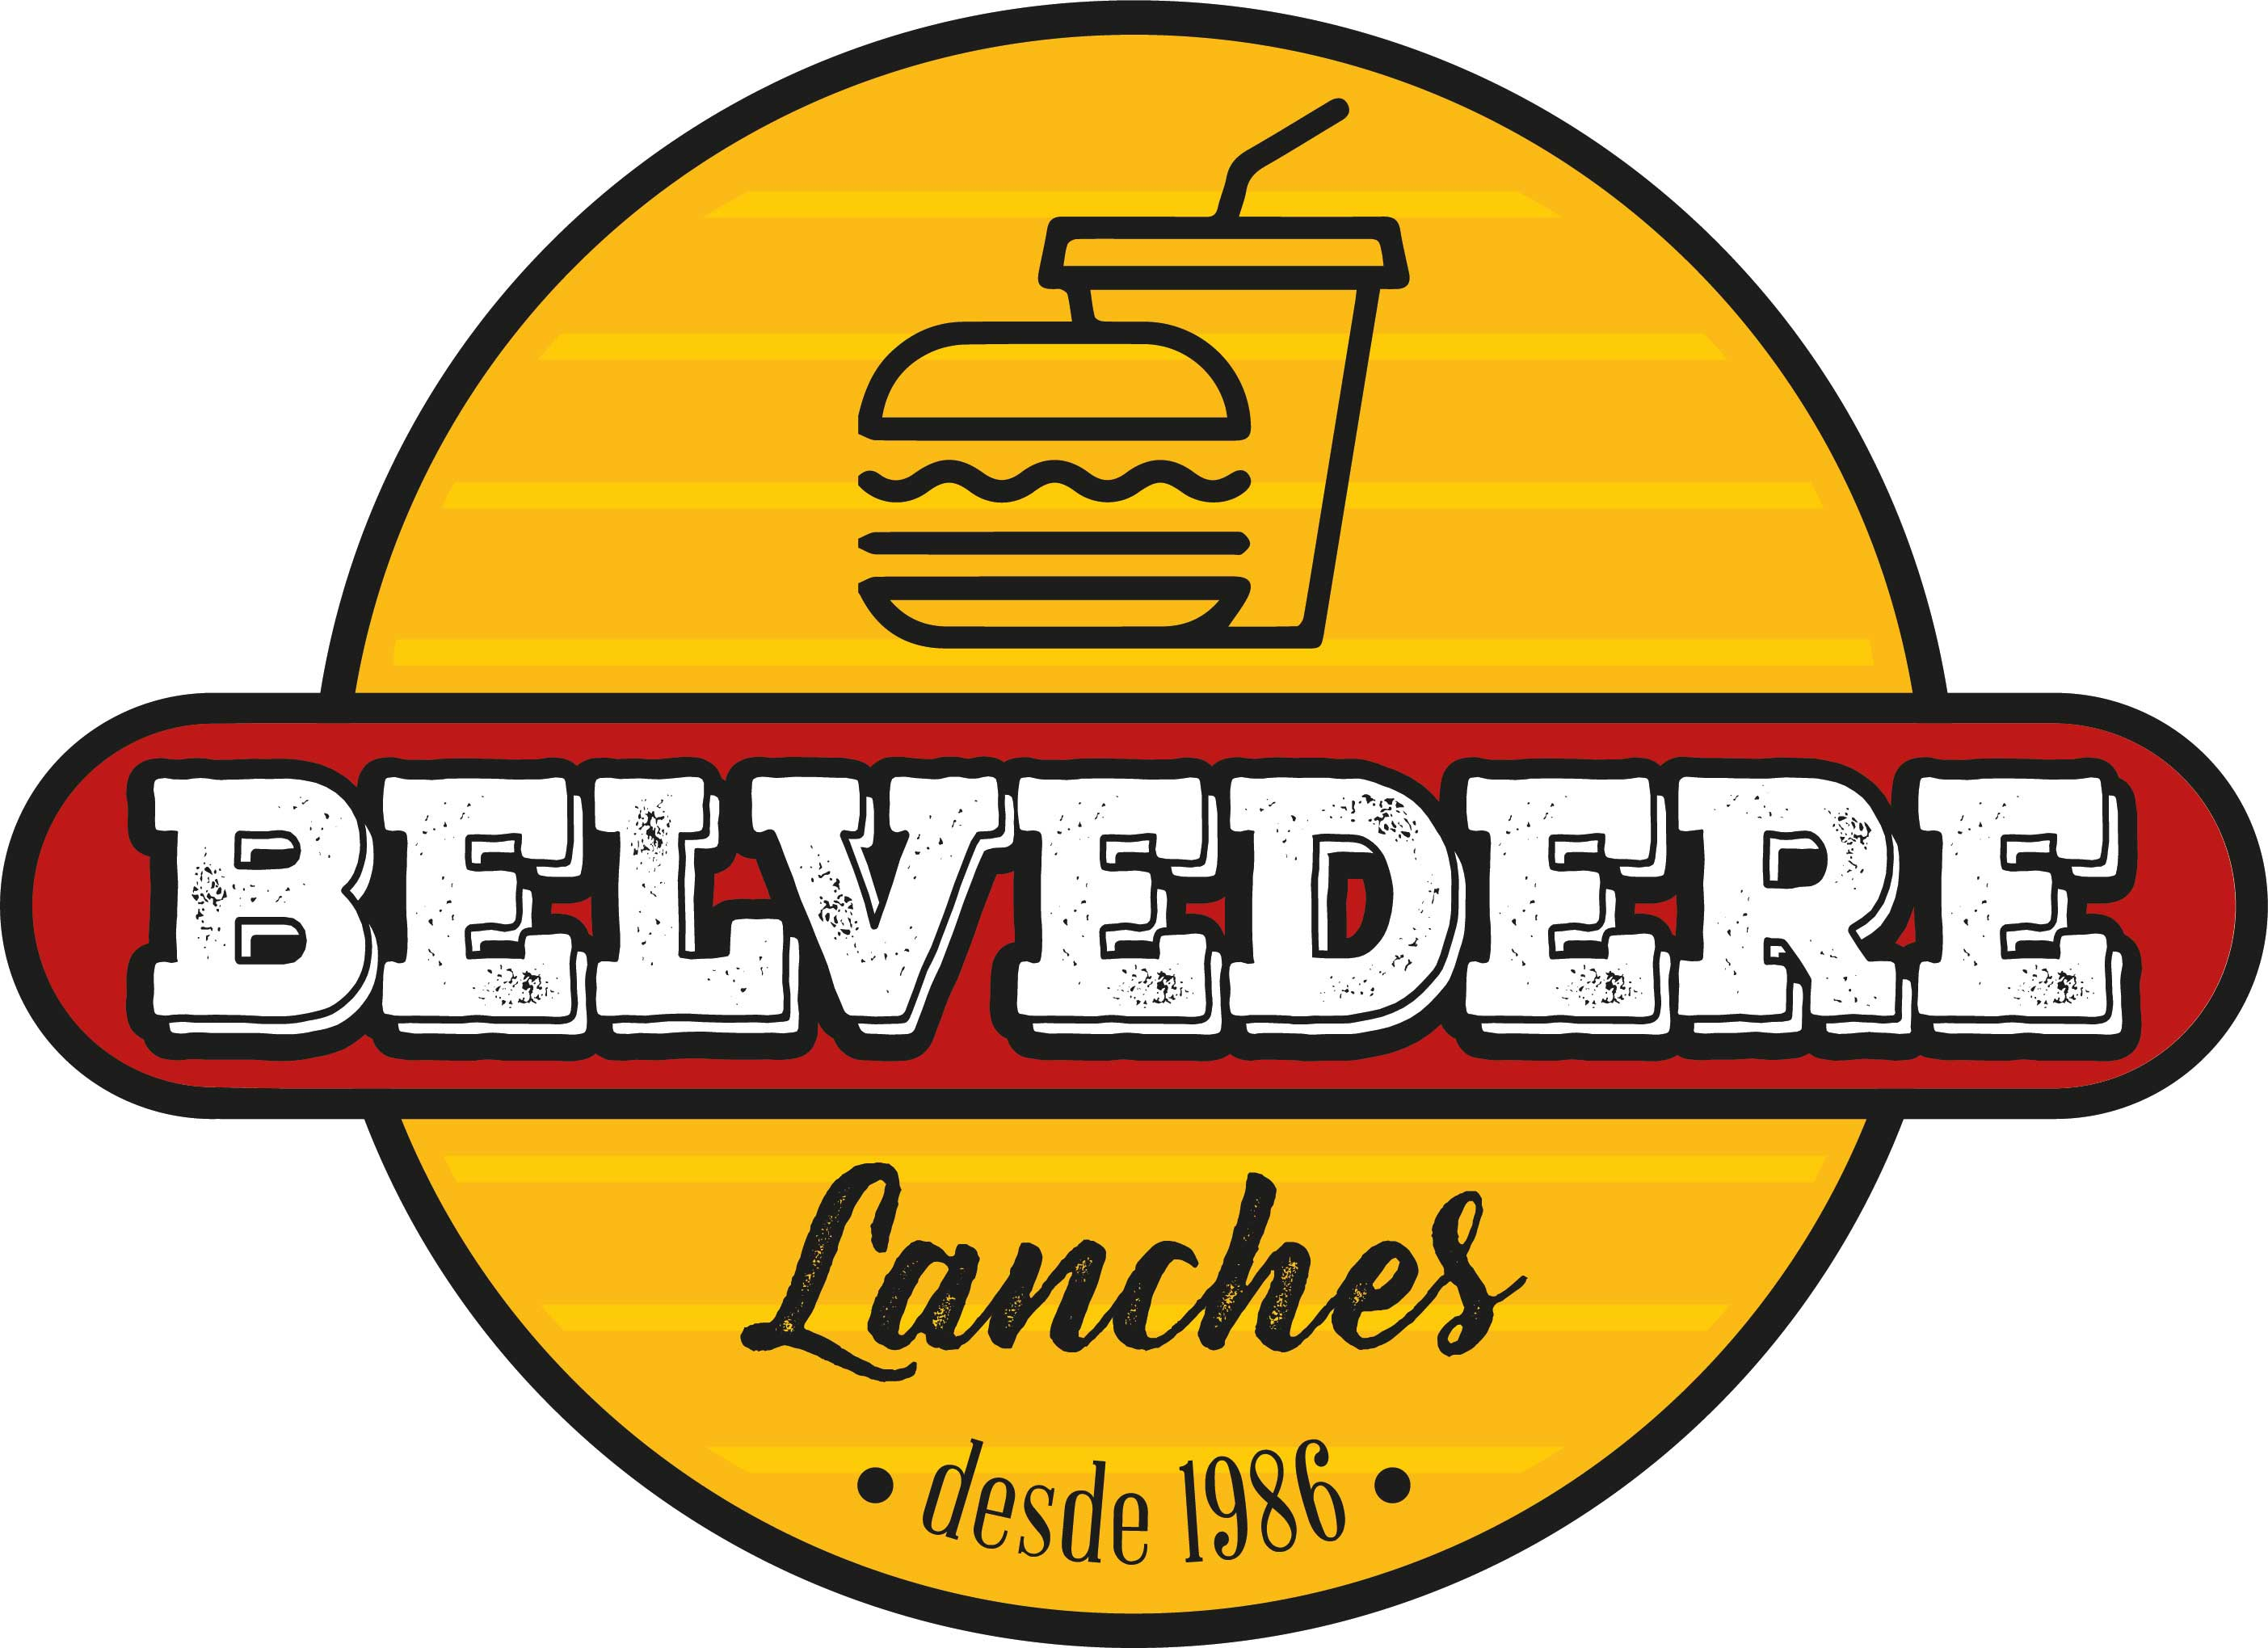 Belvedere Lanches